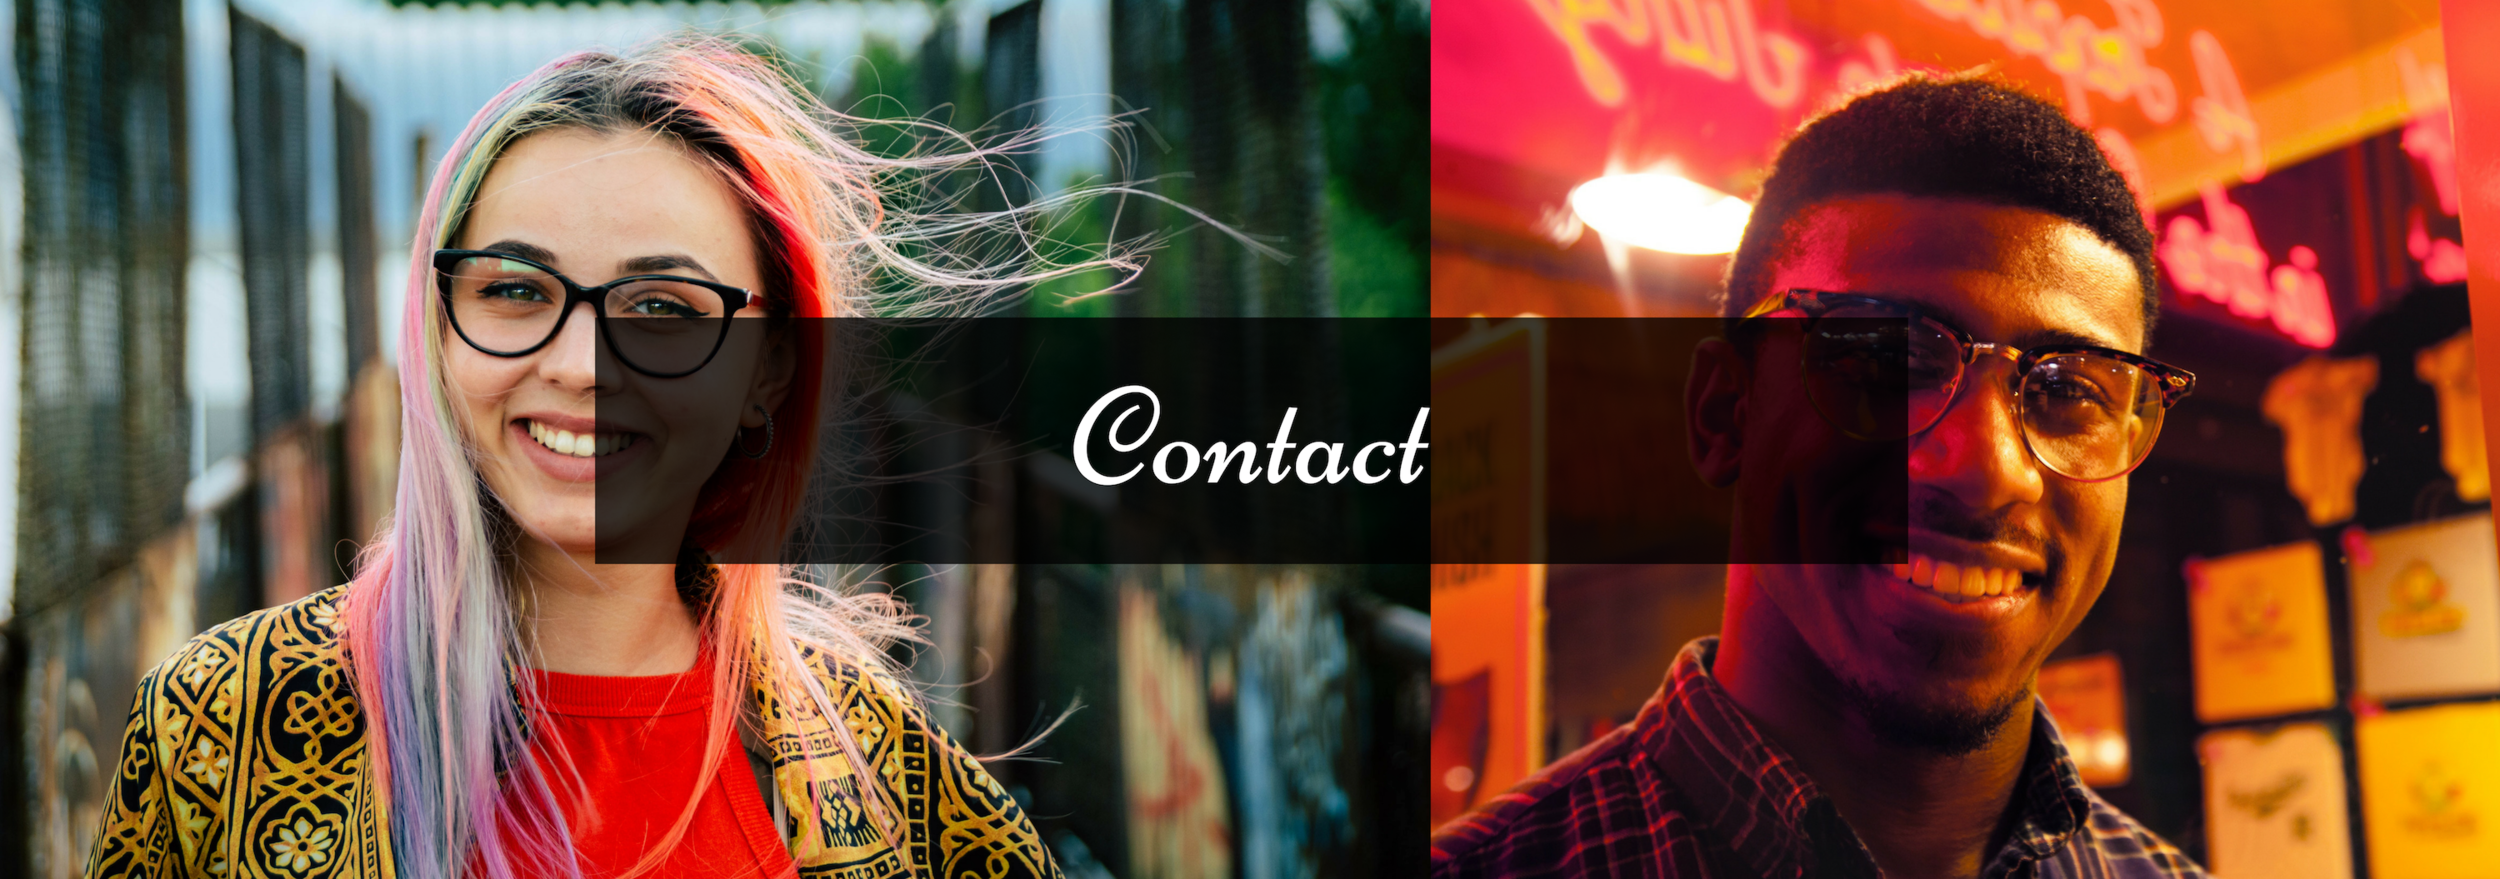 VOTC Banner_Contact.png